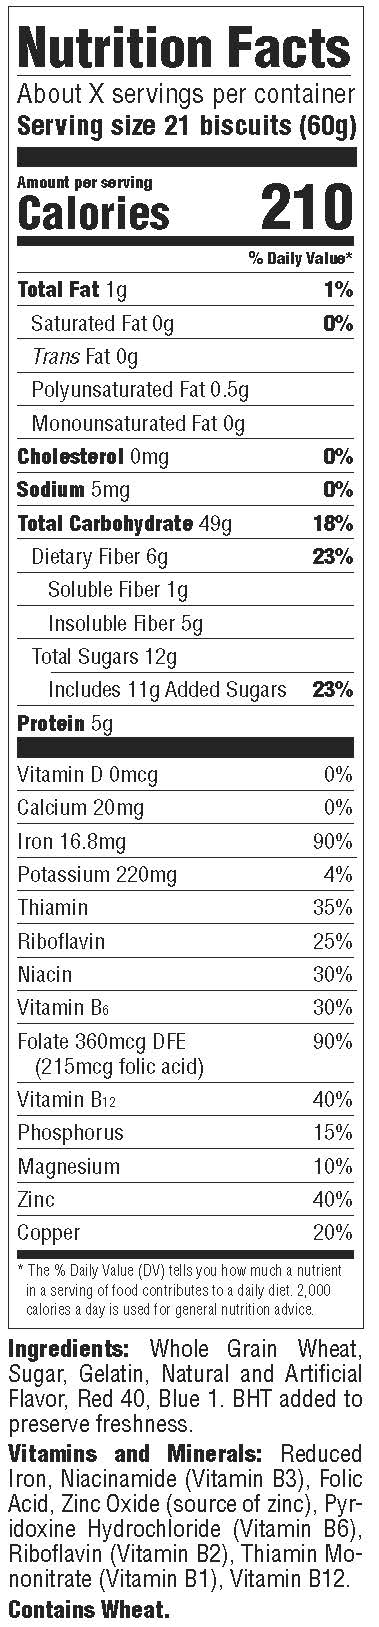 Strawberry Frosted Minis Nutrition Facts Label